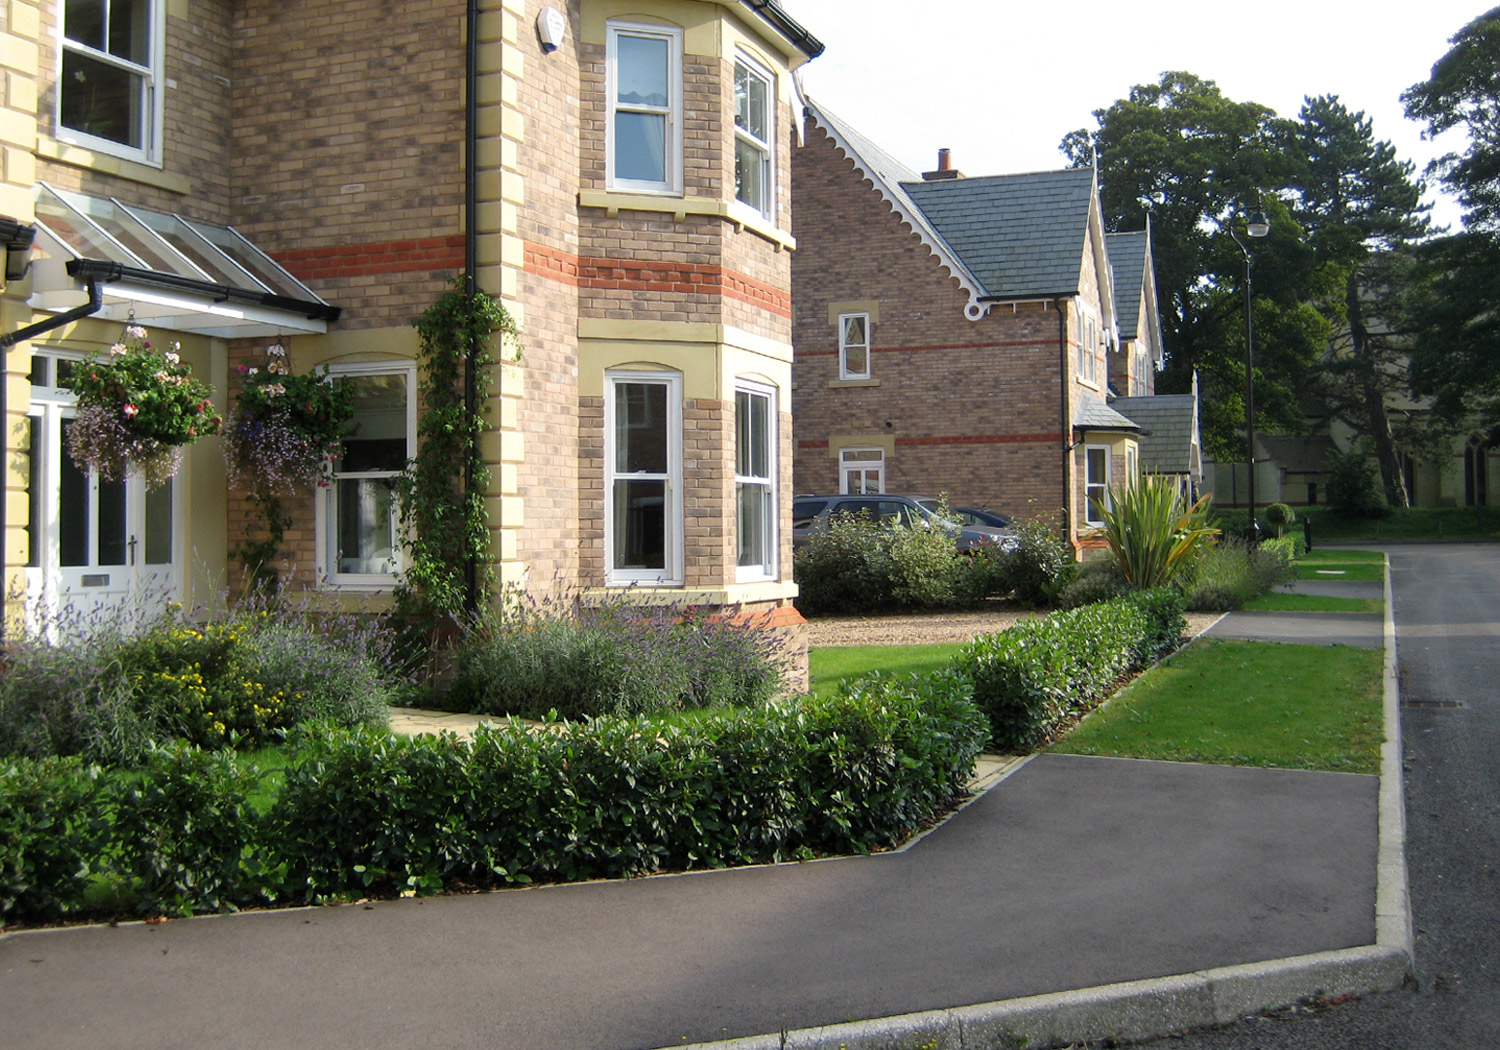 Projects-Residential-FairfieldPark-Photo6-1500x1050